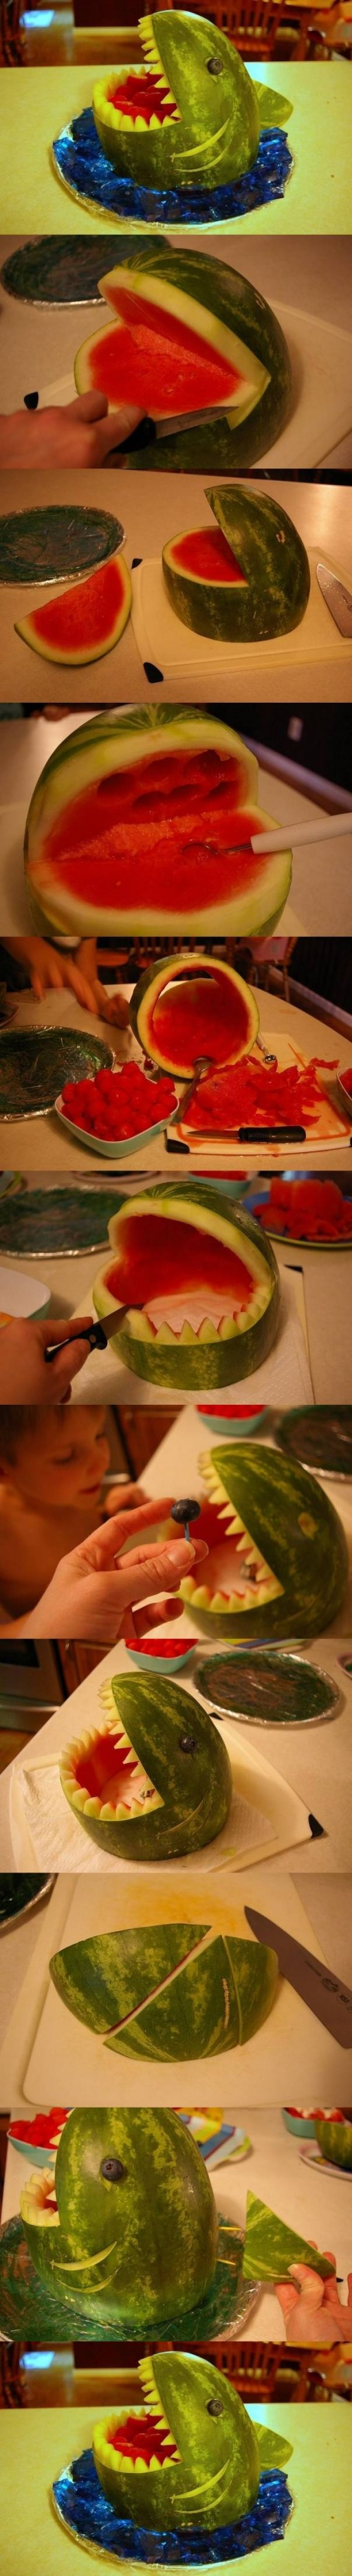 How to make Watermelon Shark Carving DIY tutorial instructions